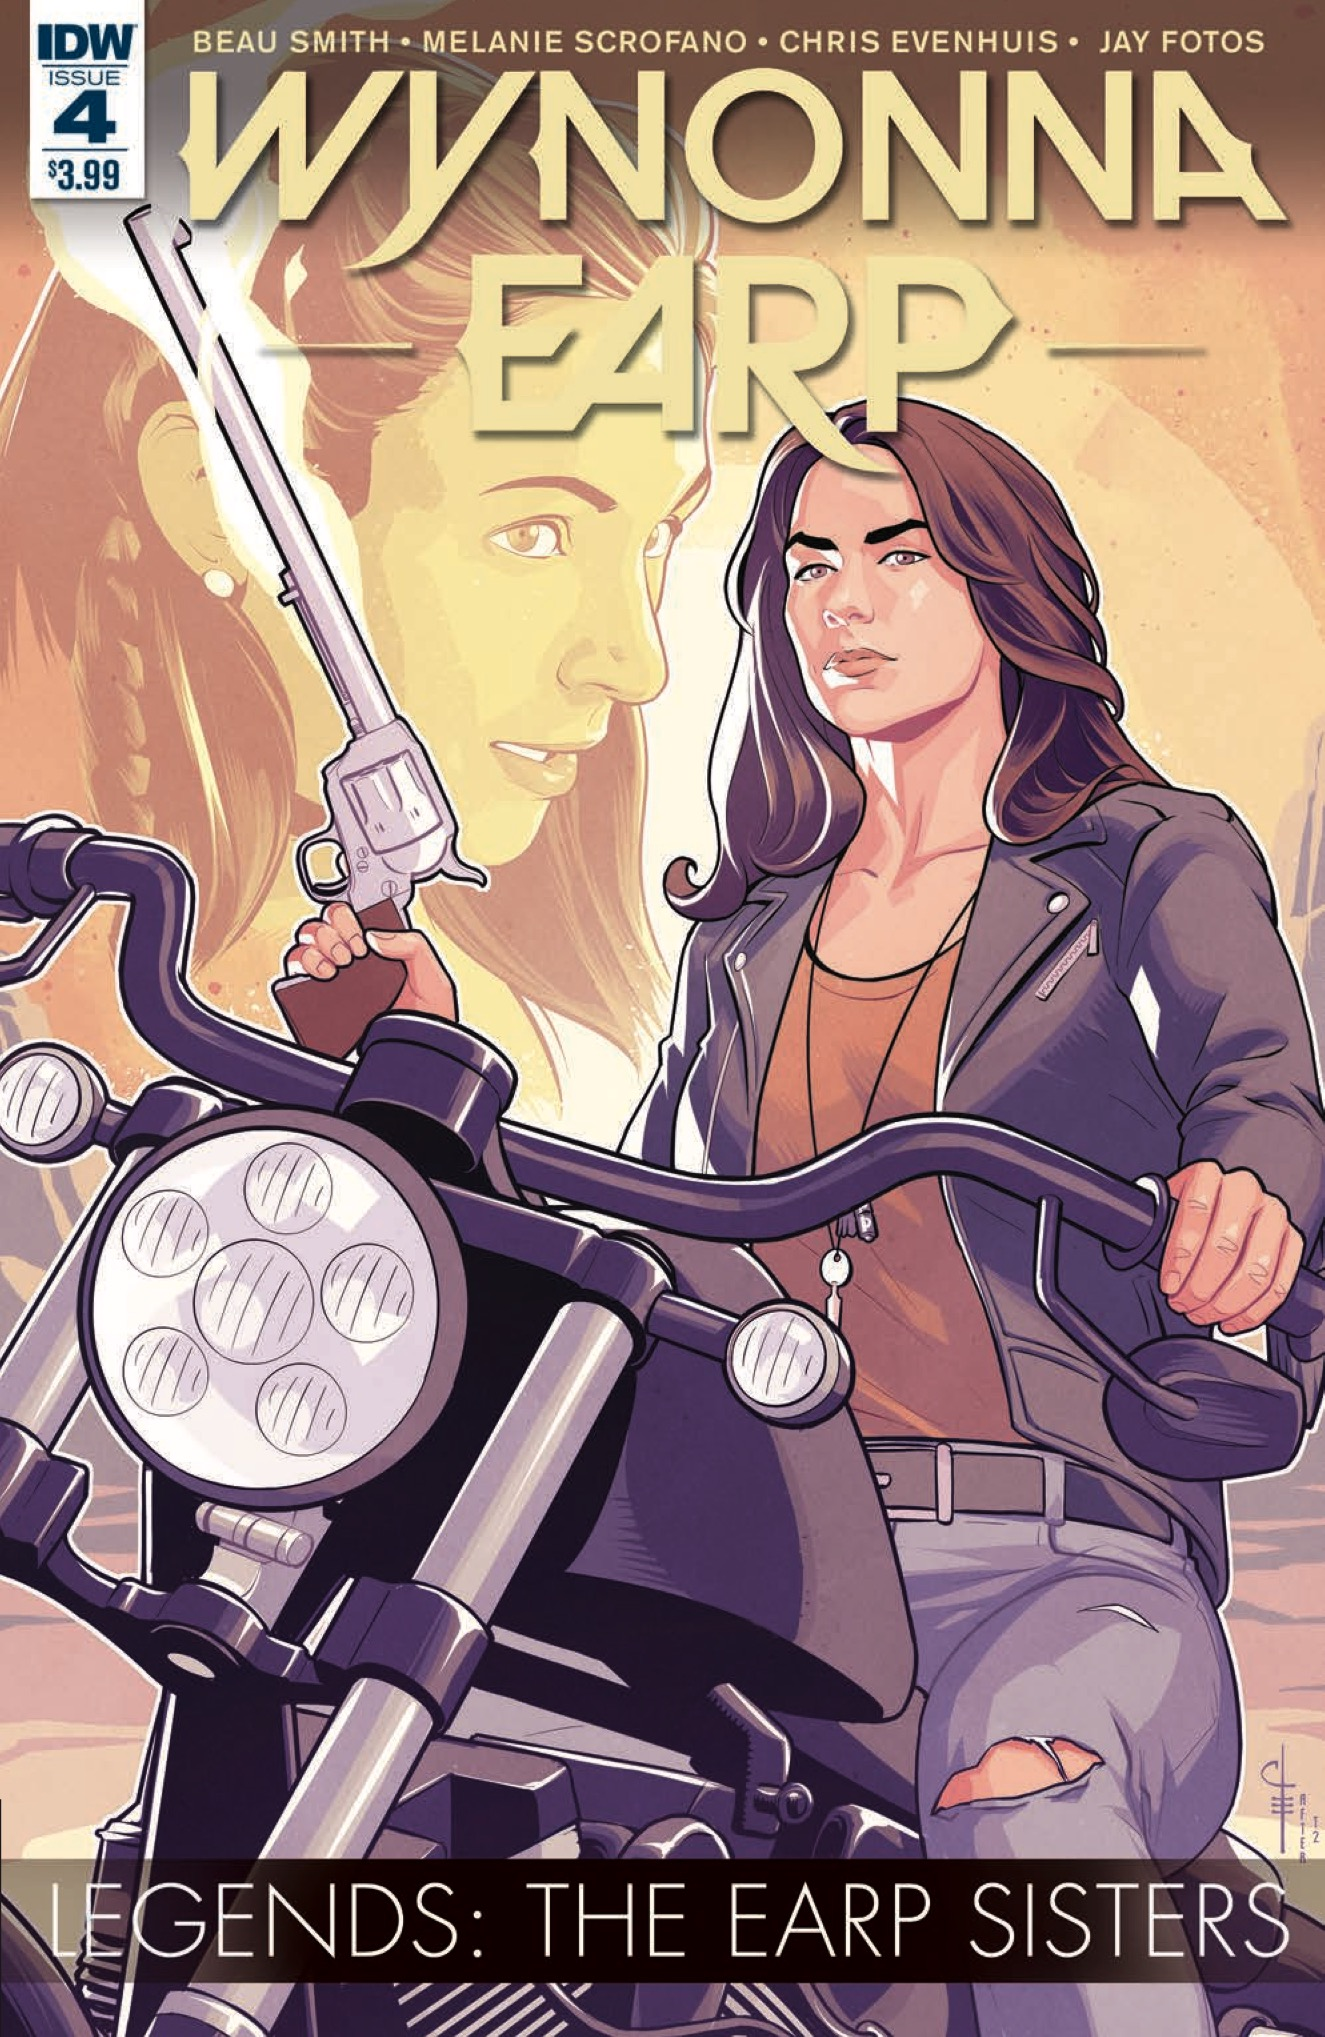 [EXCLUSIVE] IDW Preview: Wynonna Earp Legends: The Earp Sisters #4